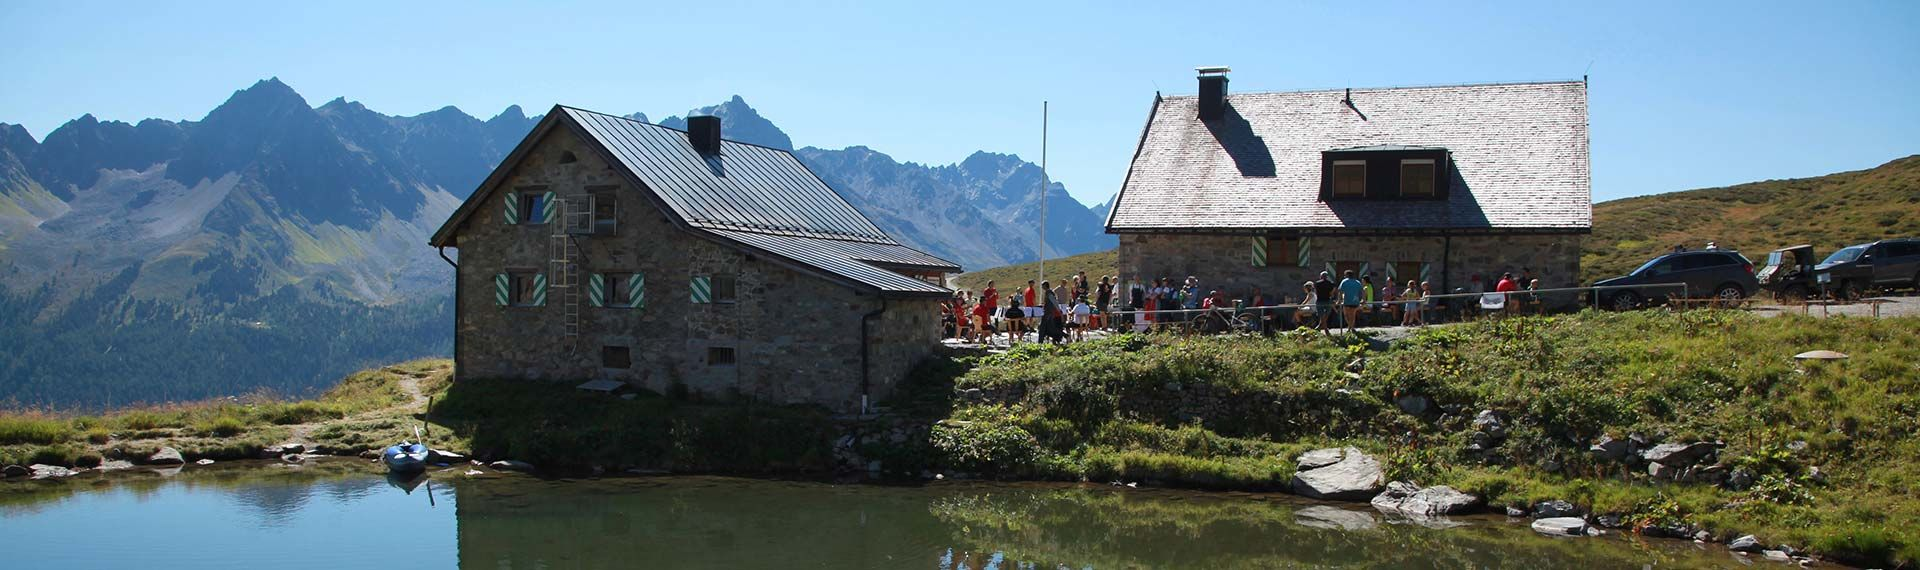 Through green alpine meadows to the most beautiful alpine huts in the Paznaun Valley